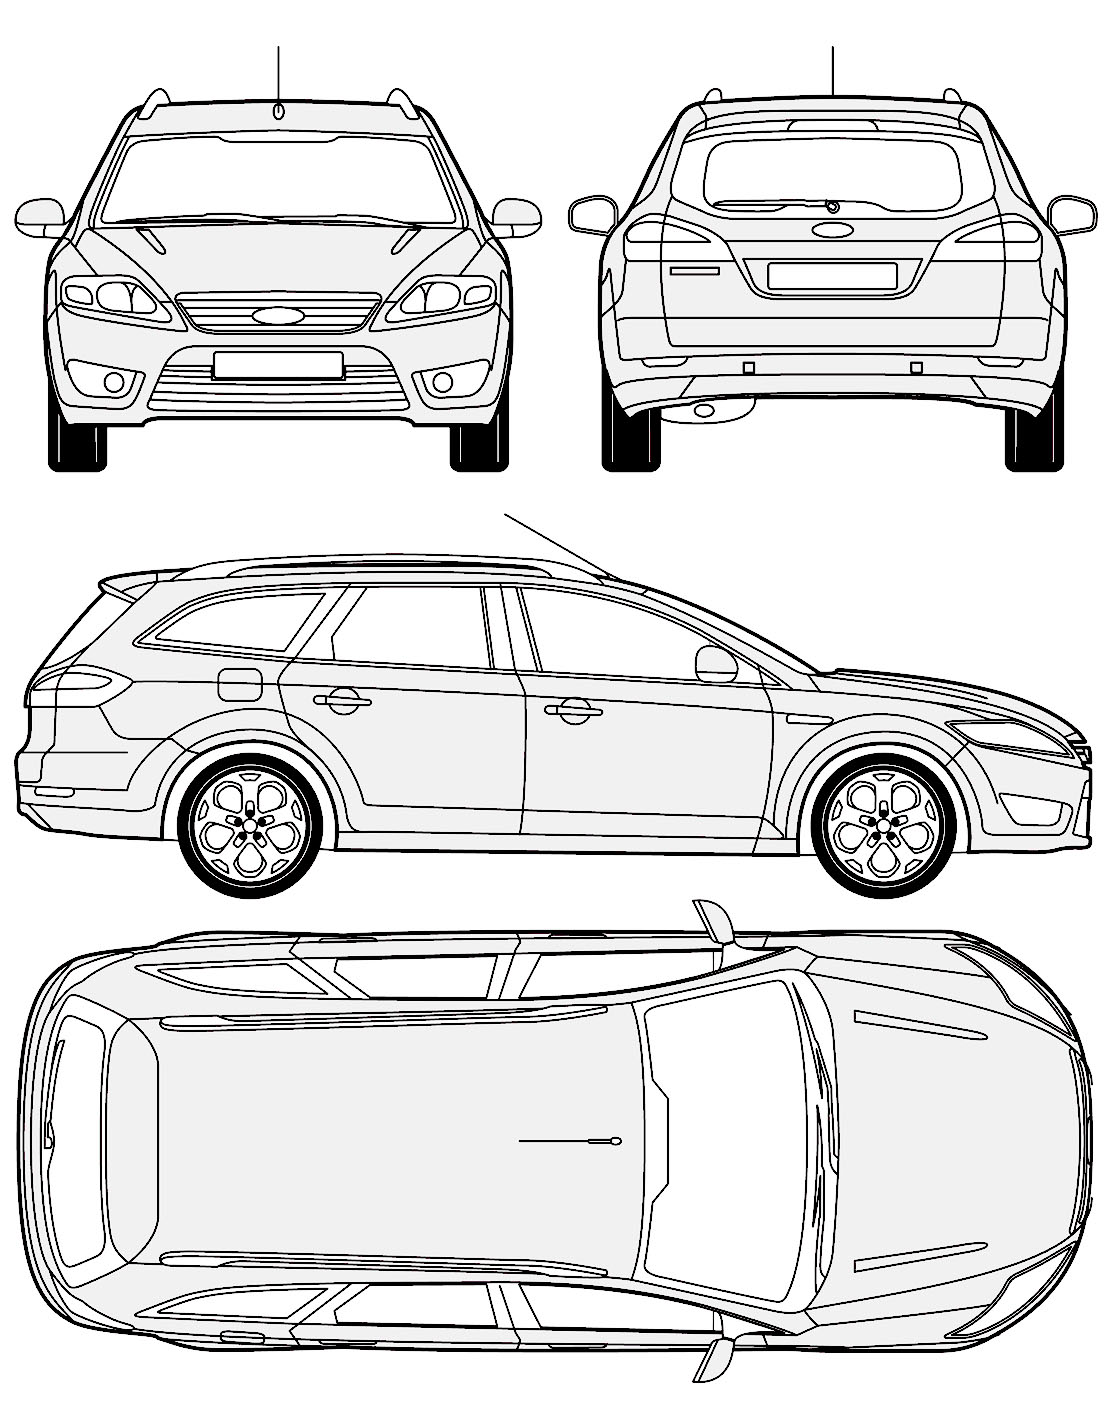 small resolution of blueprints ford 10 pic jpg 1 85 mb